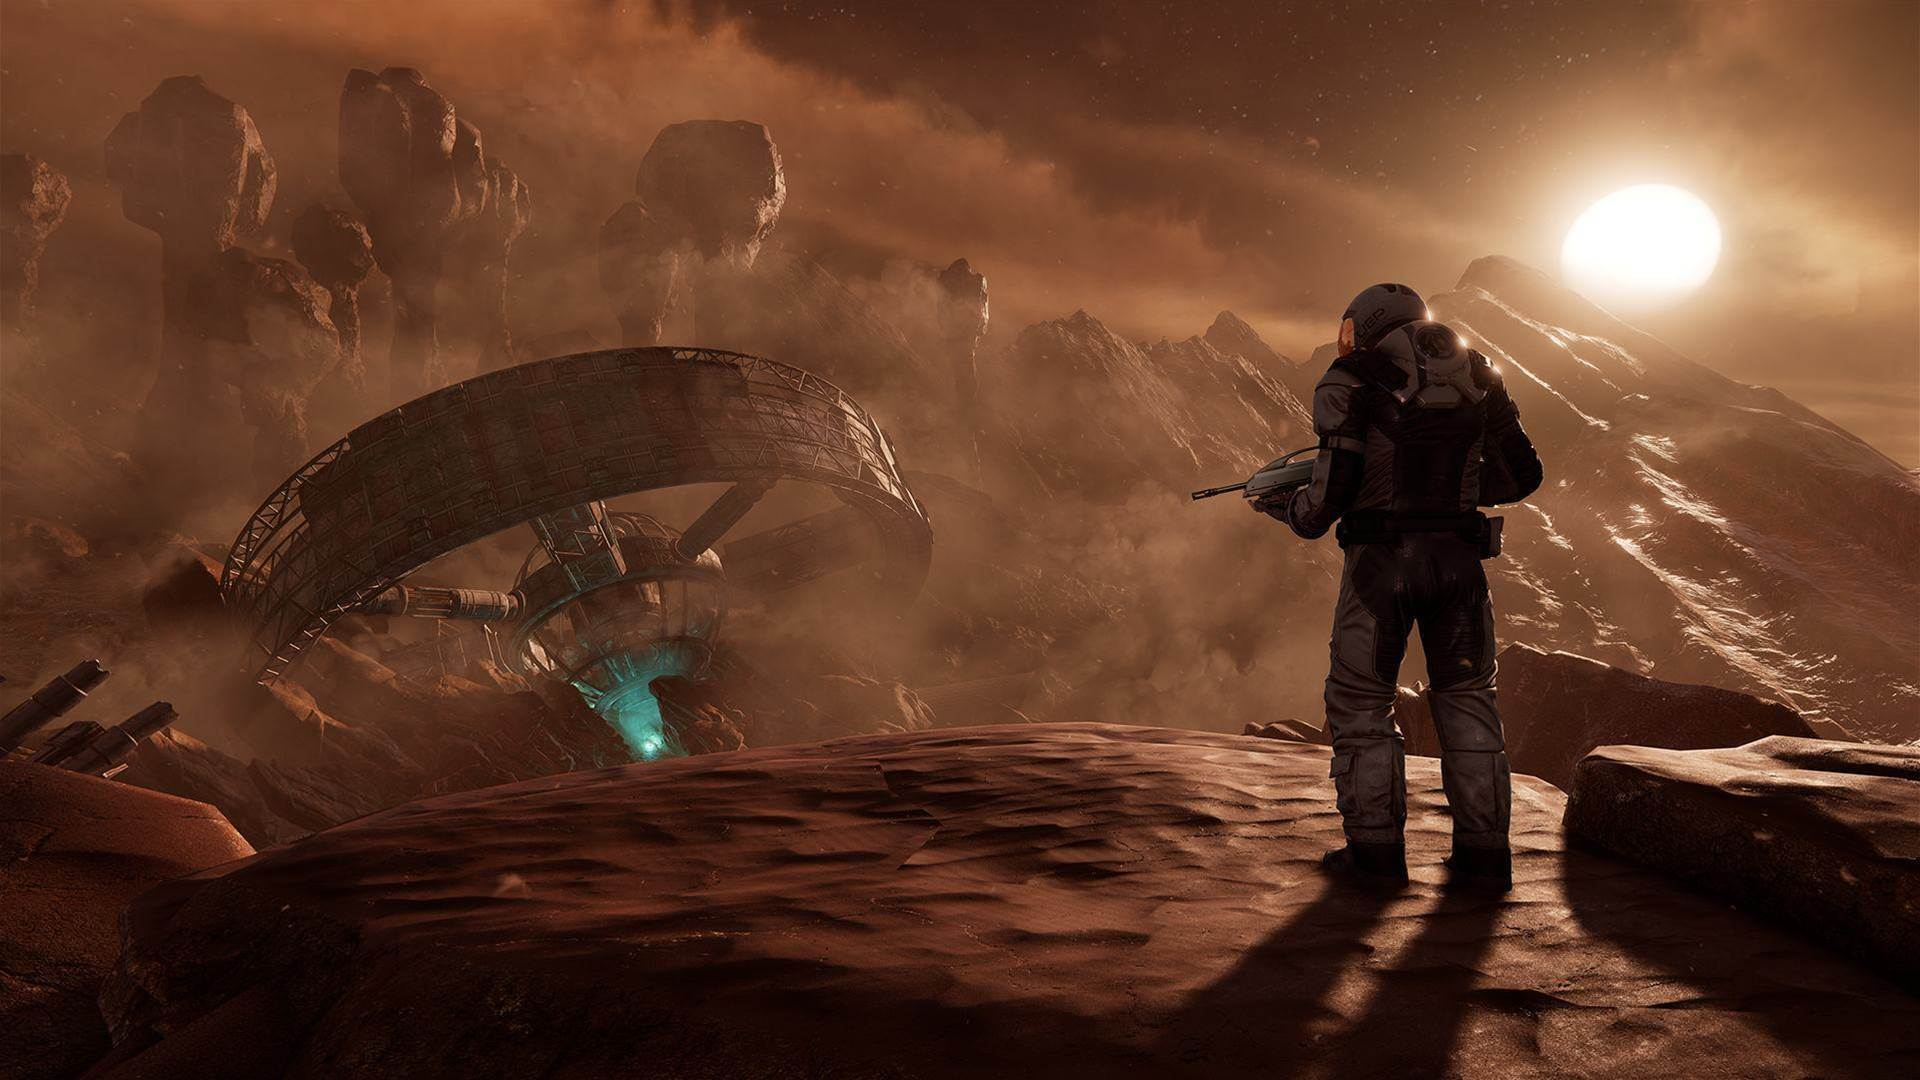 Sci-fi screens for Farpoint